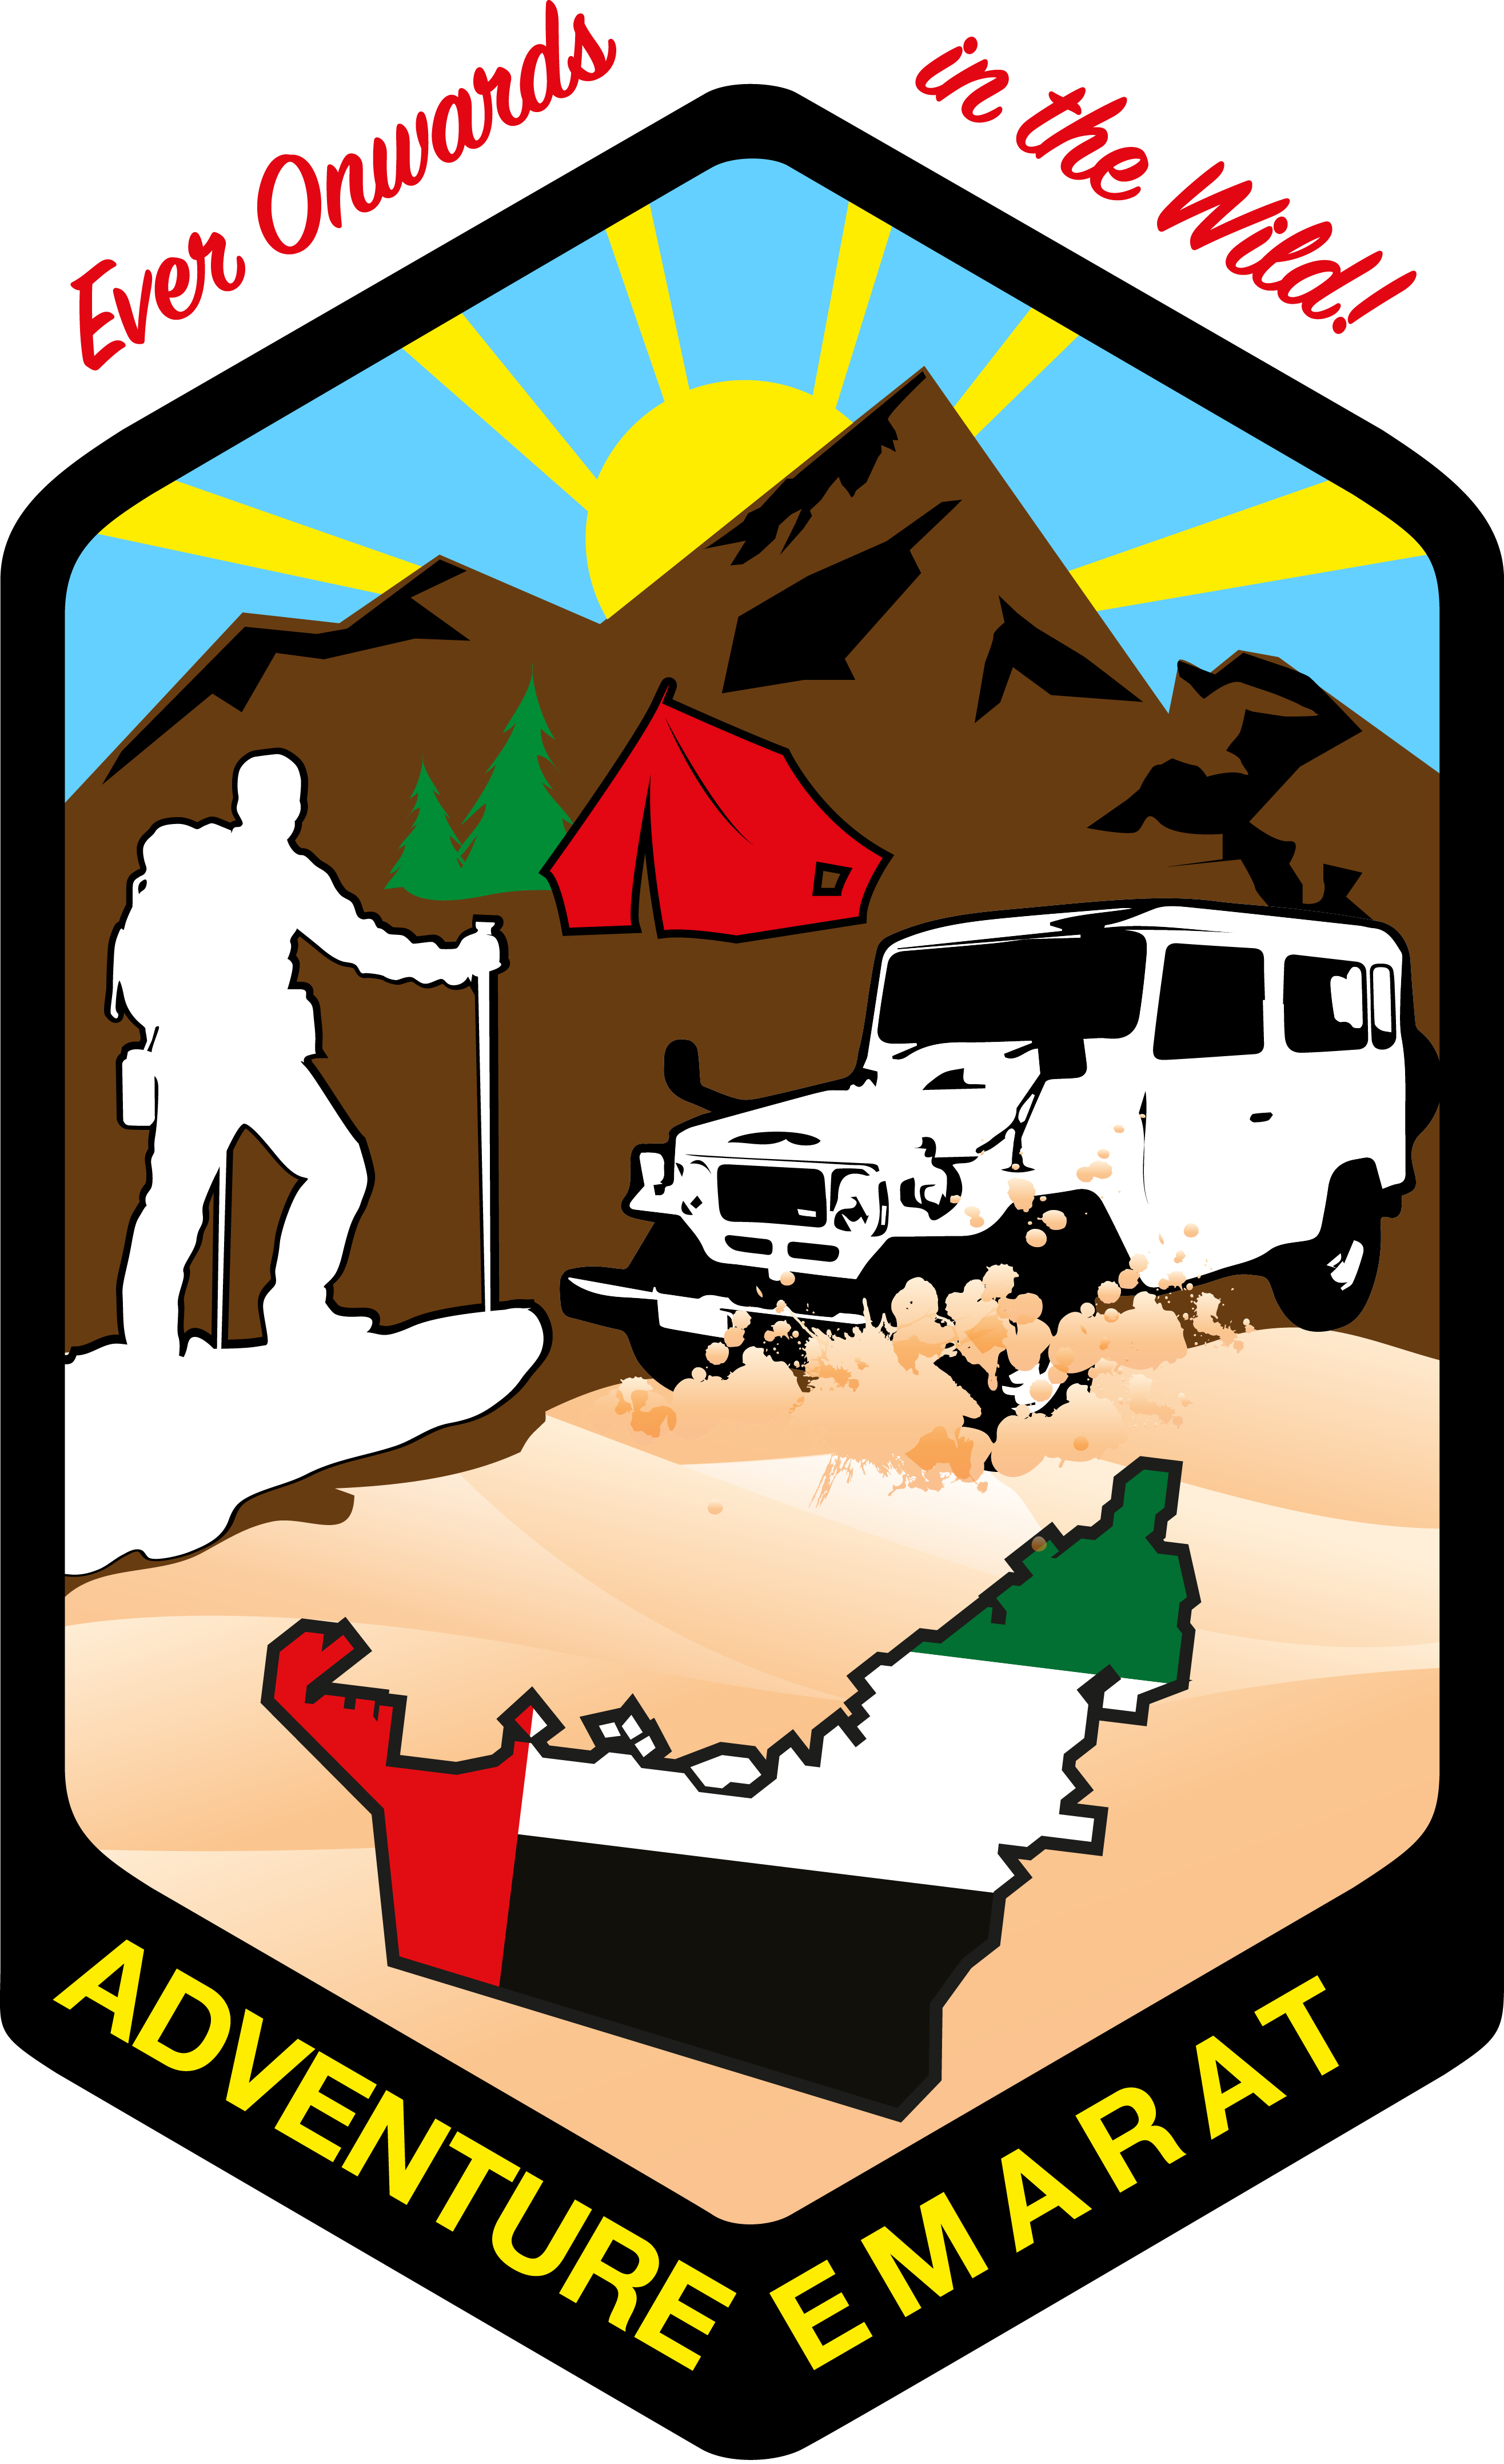 Hike clipart night hike. Oman overnighter and to